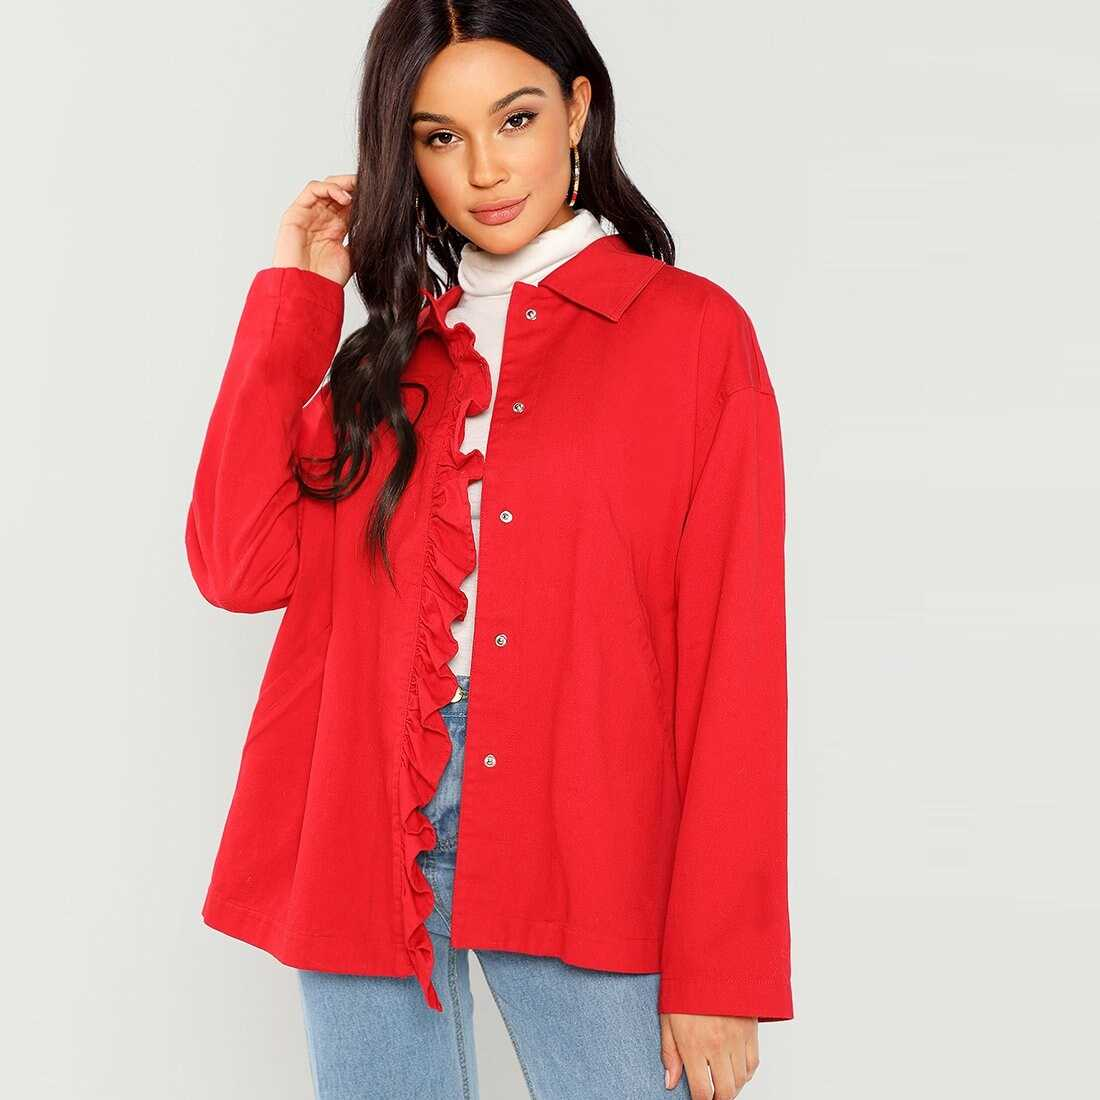 Pocket Patched Front Frill Jacket - Shein - GOOFASH